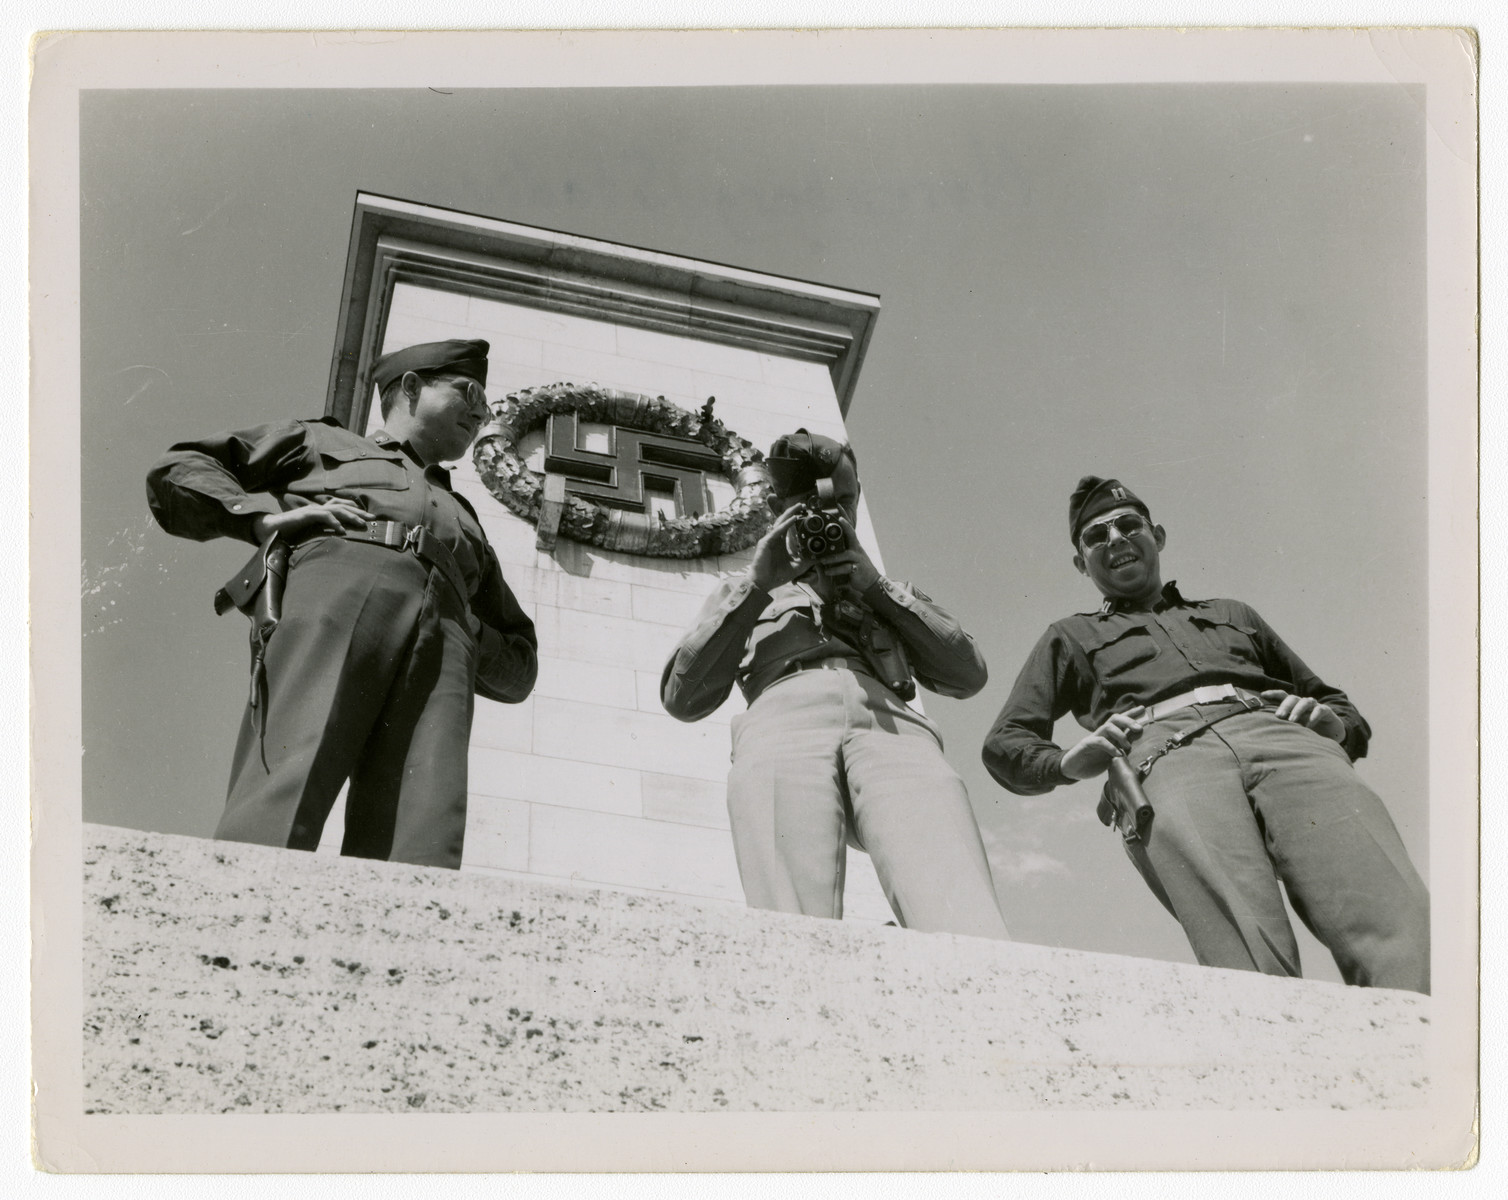 Three American soldiers, one with a camera, visit the Nazi stadium in Nuremberg.